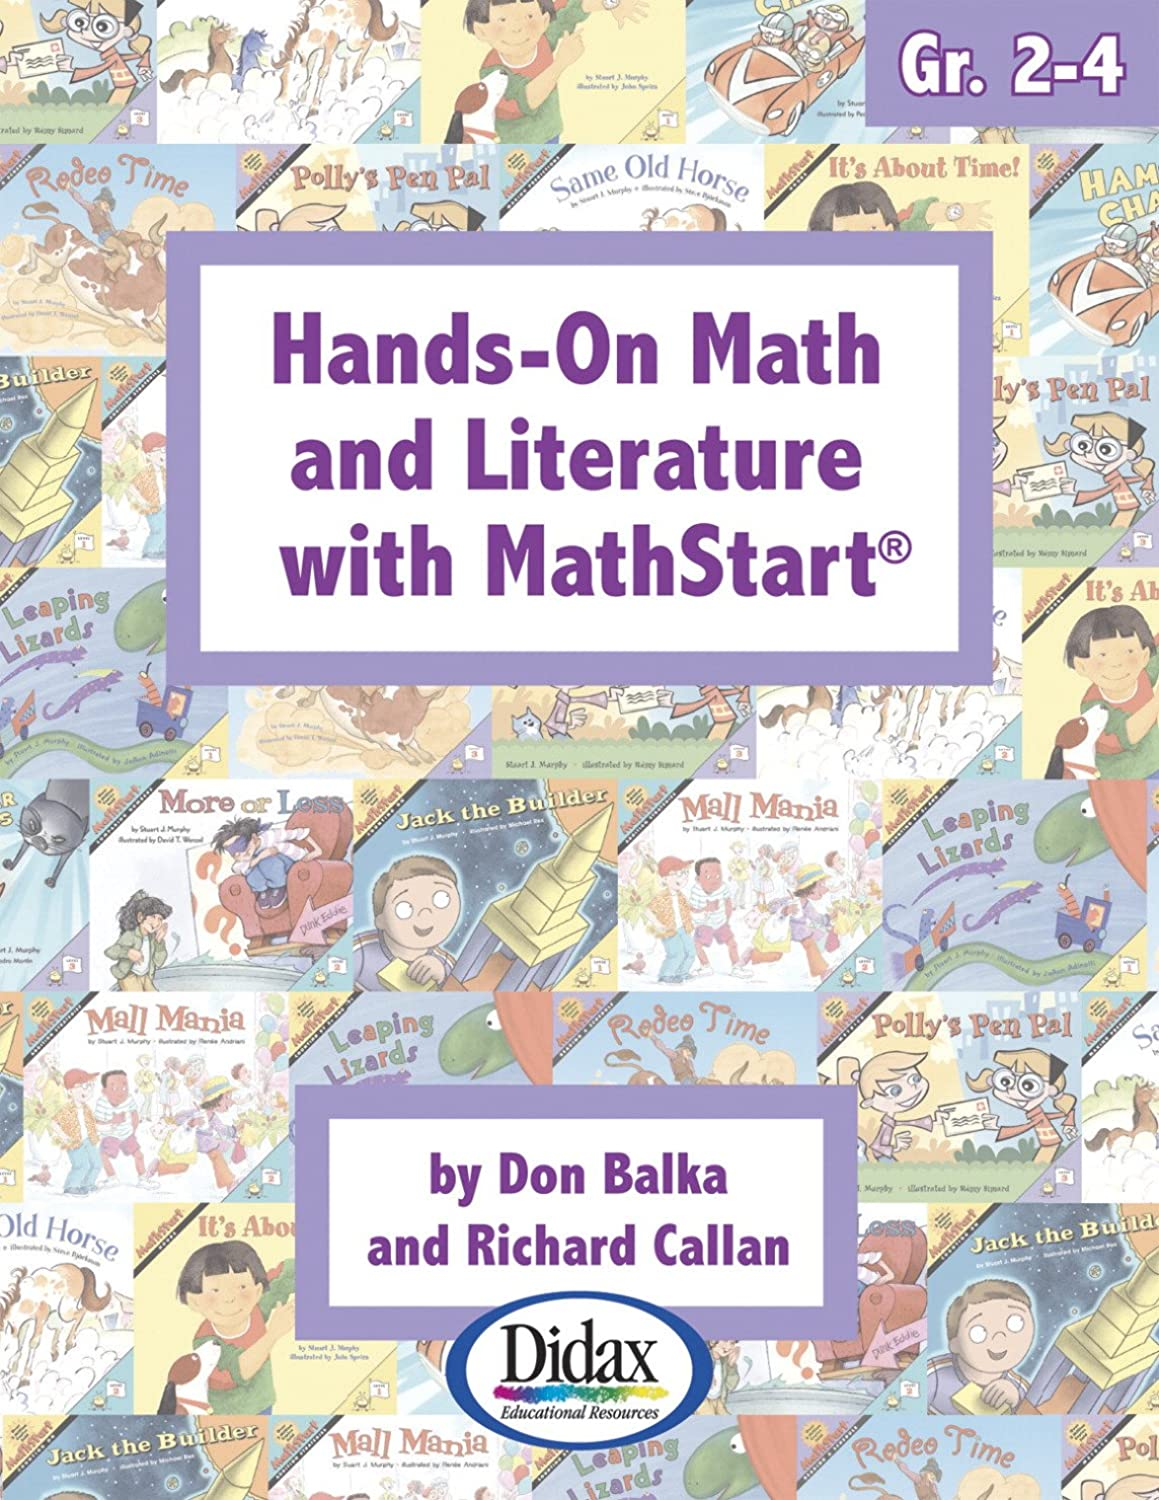 Didax Educational Resources Hands-on Math & Lit with Math start, Gr. 2-4